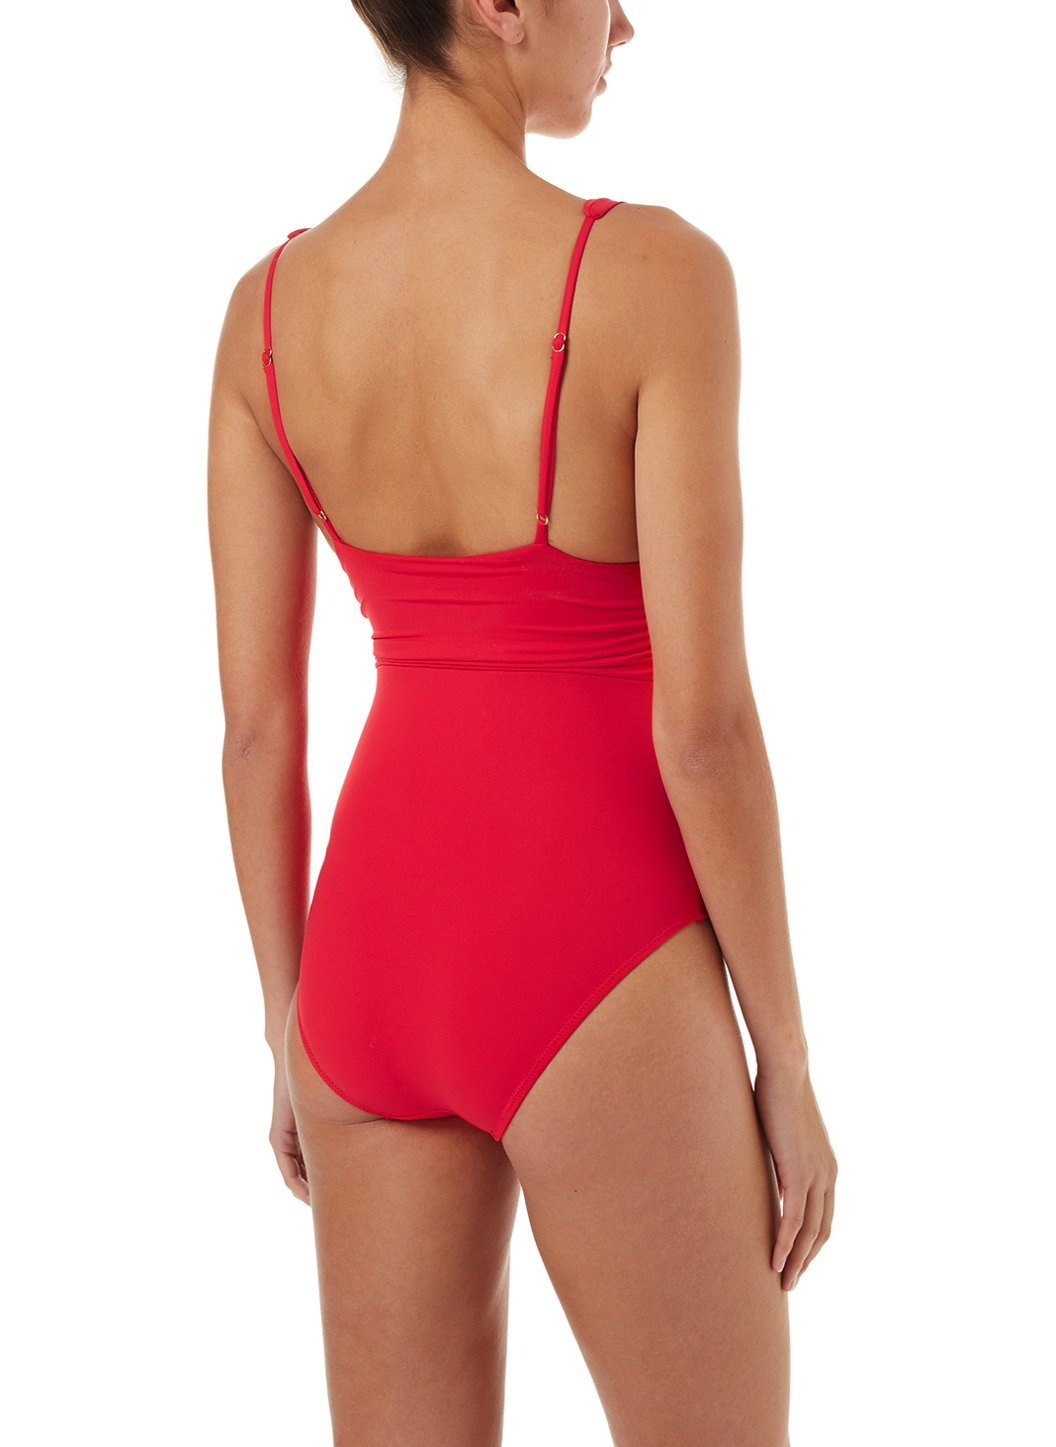 panarea red classic overtheshoulder ruched onepiece swimsuit 2019 B